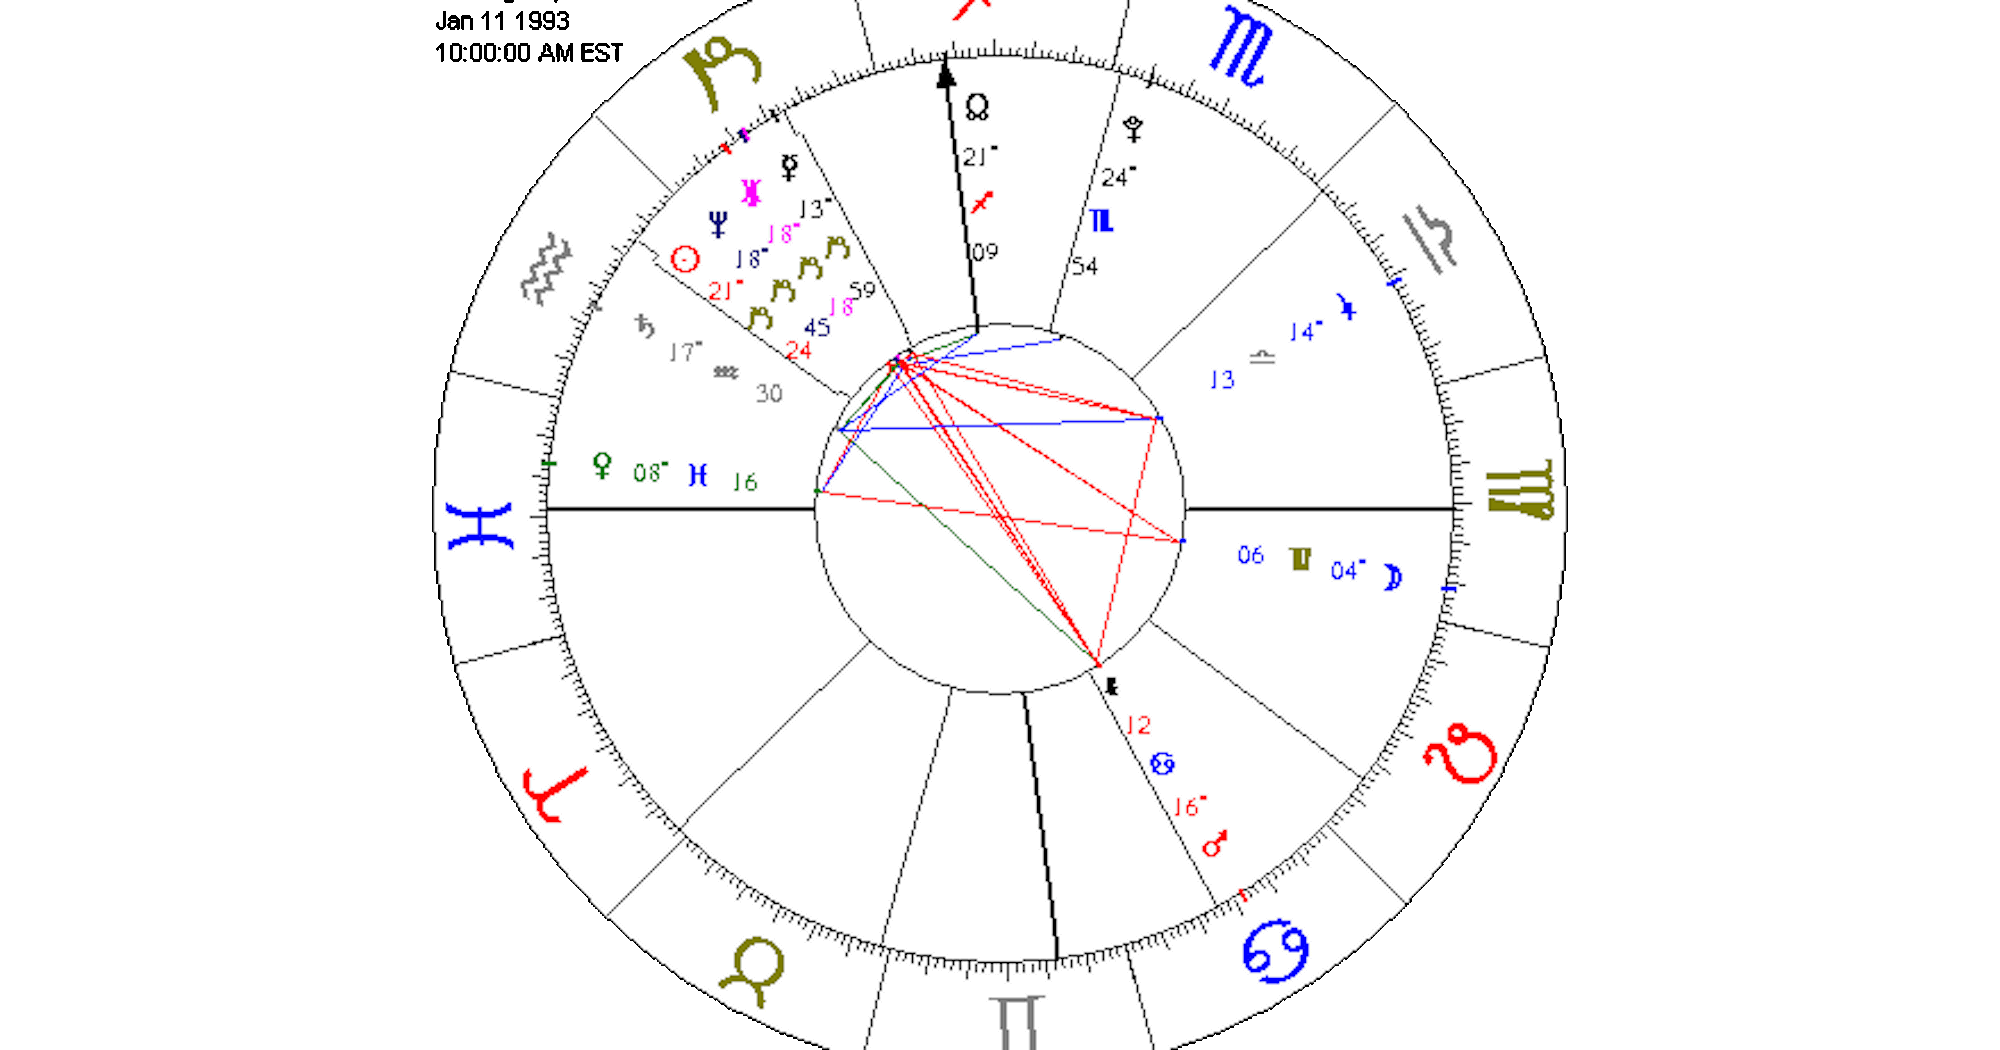 Astrology birth chart analysis how to read natal chart nvjuhfo Choice Image